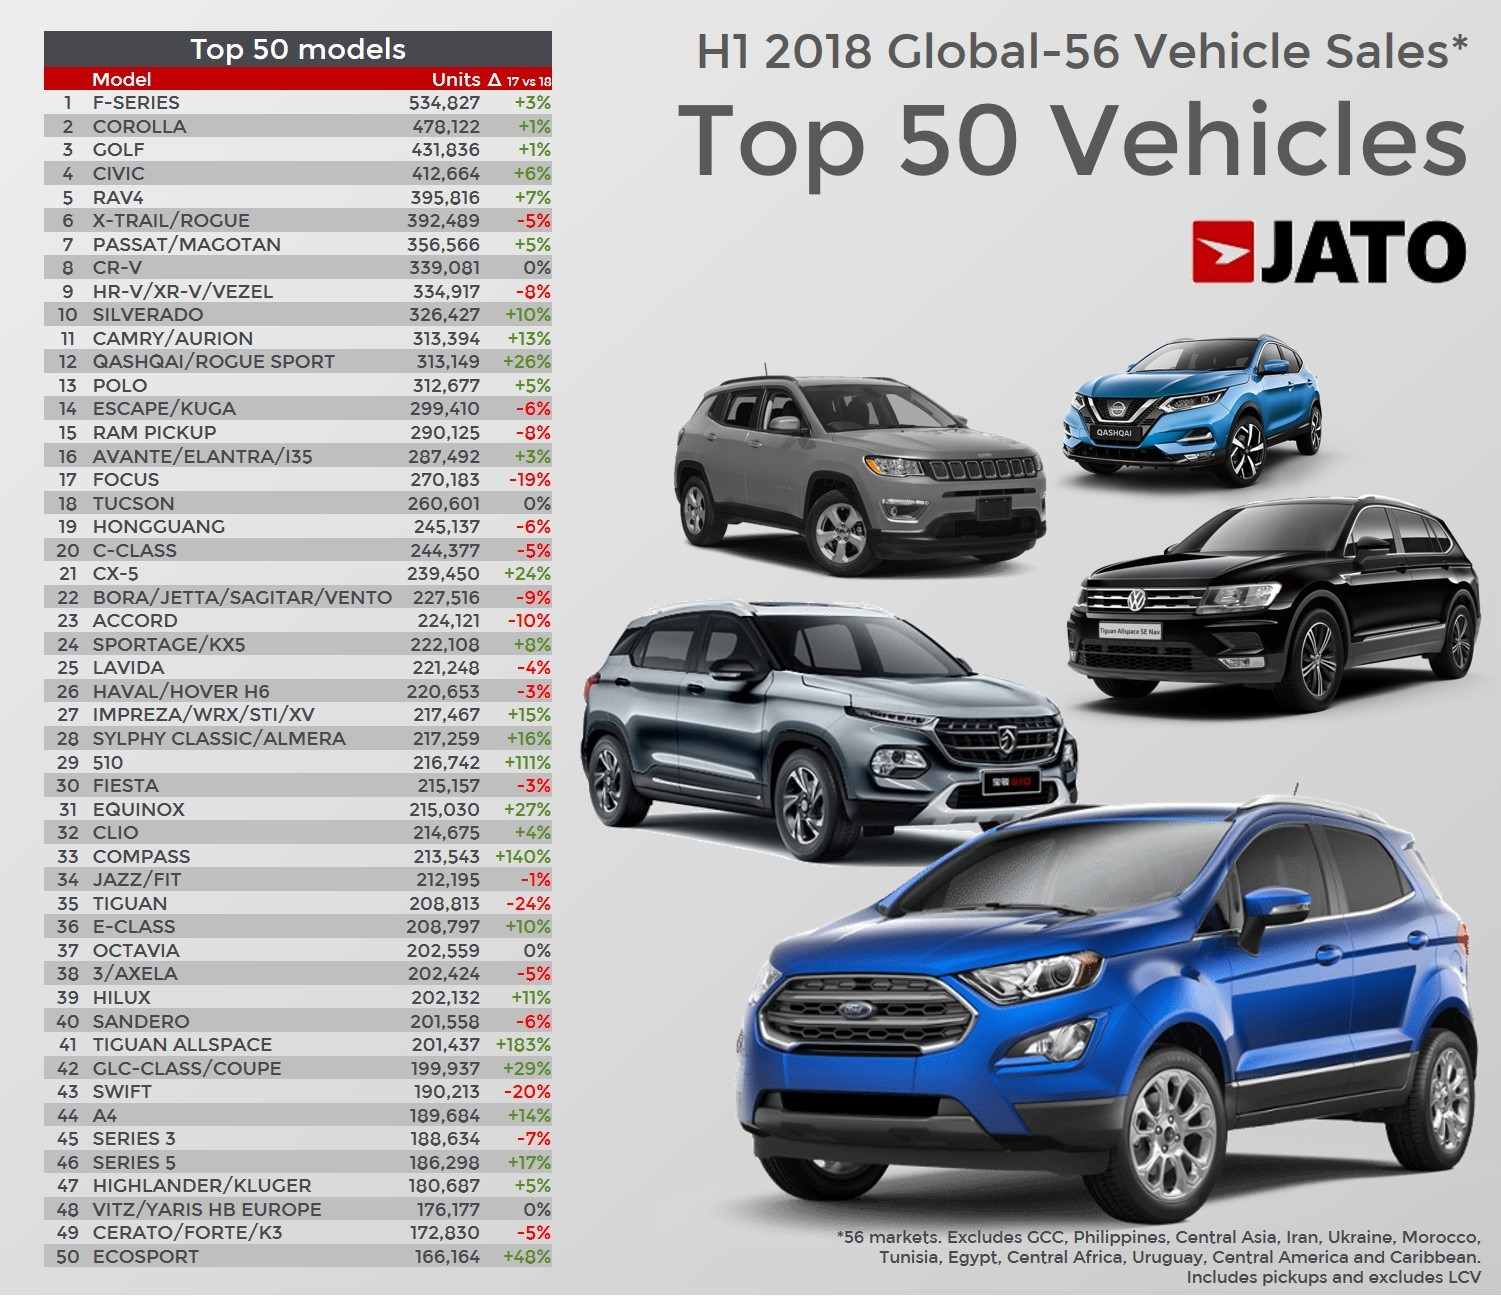 Top 50 best-selling vehicles in the world